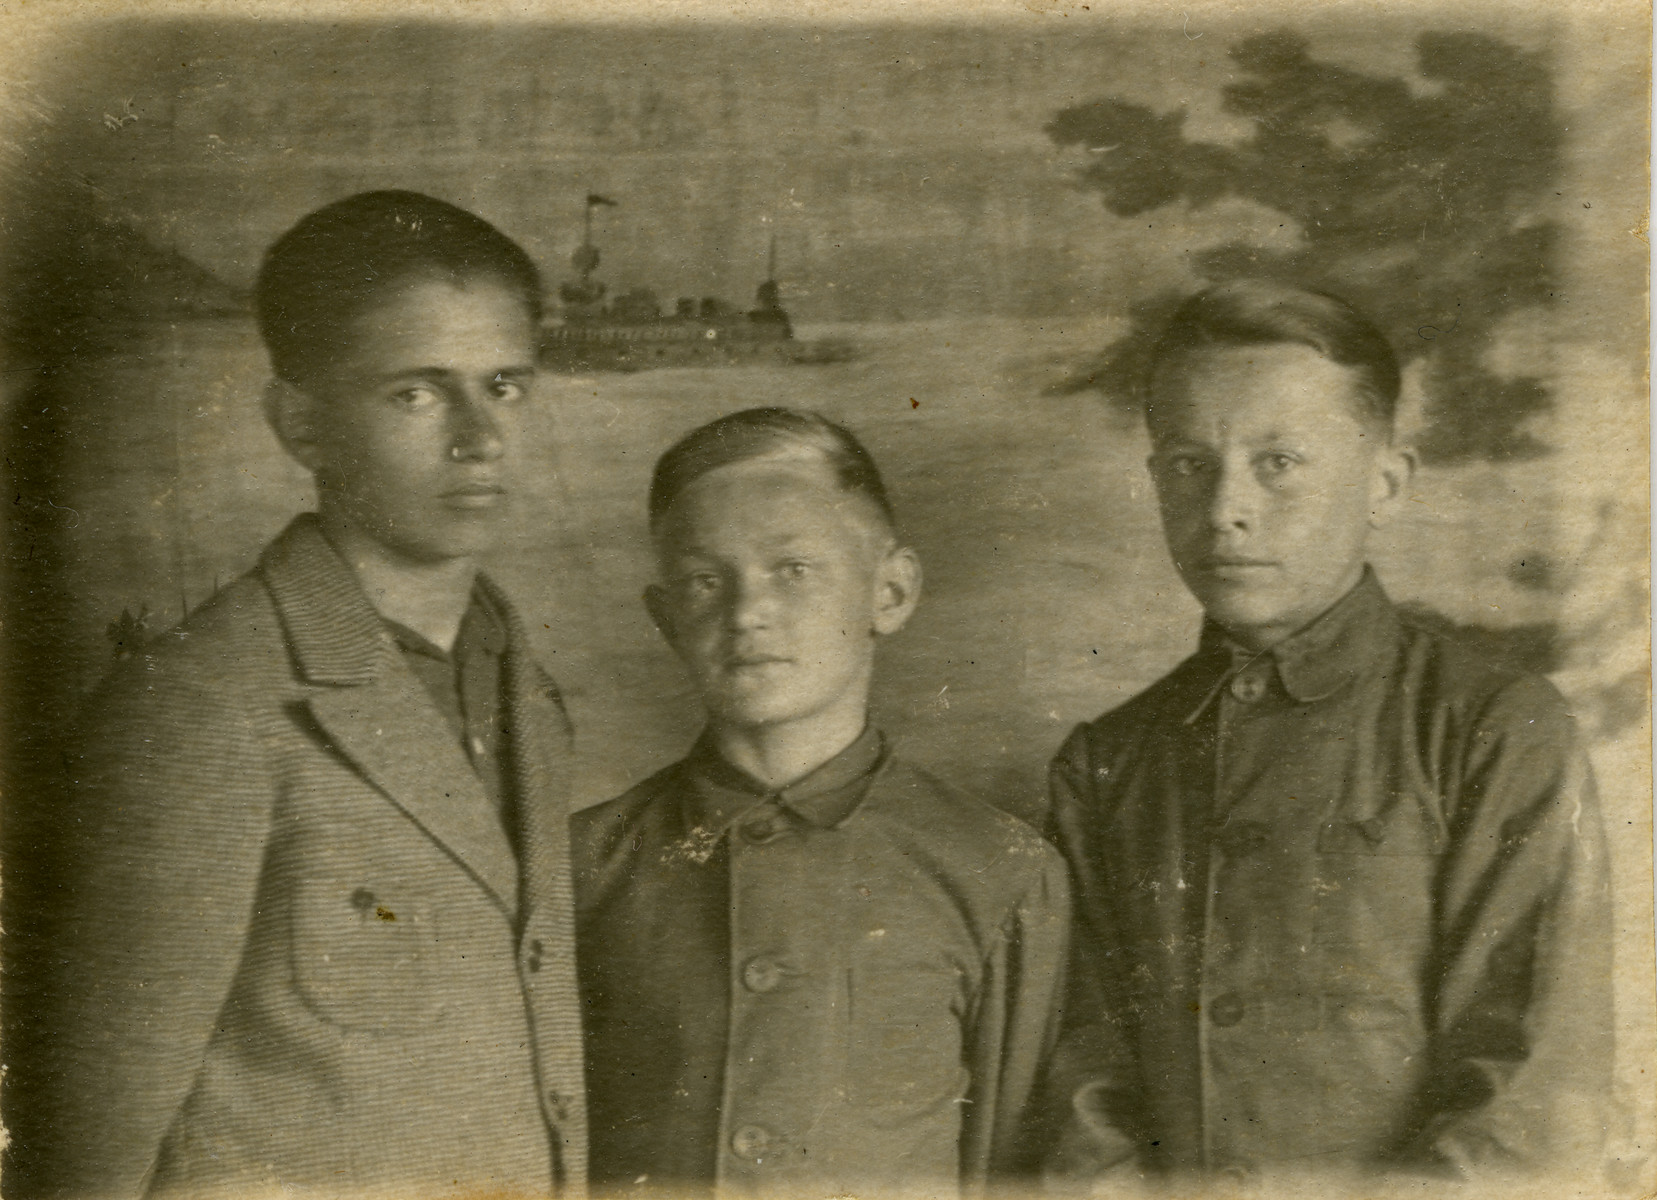 Studio portrait of Isser Nividomsky (center) and two other boys from the Pioneer summer camp in Druskininkai.